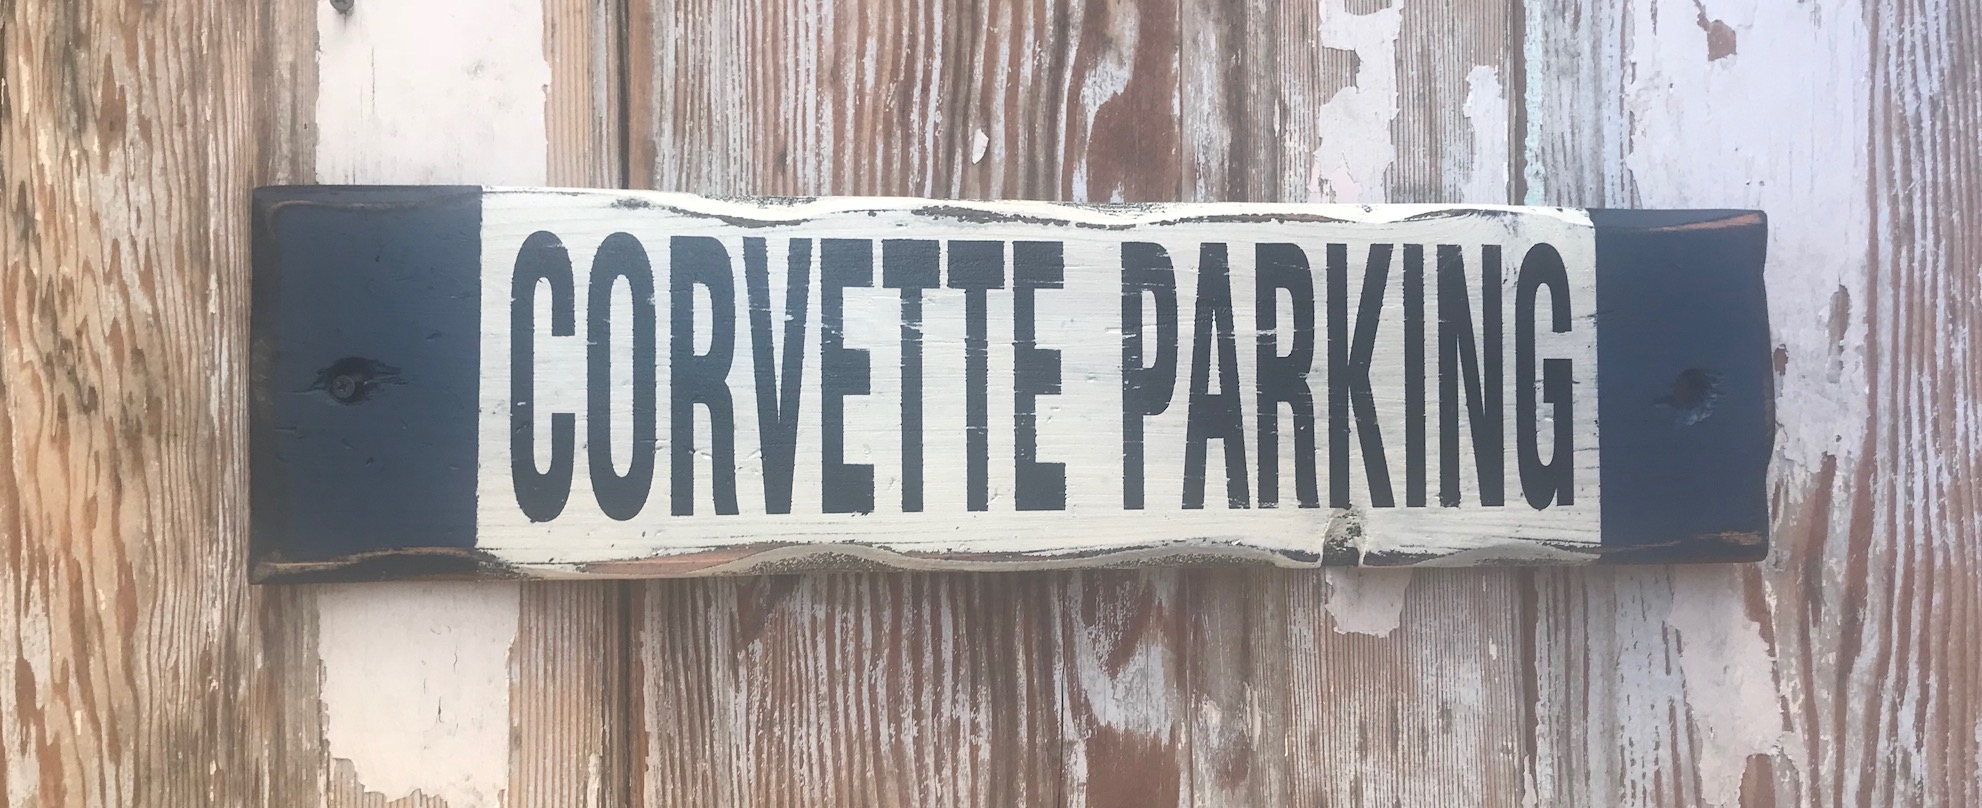 Corvette Parking.  Rustic Wood Sign